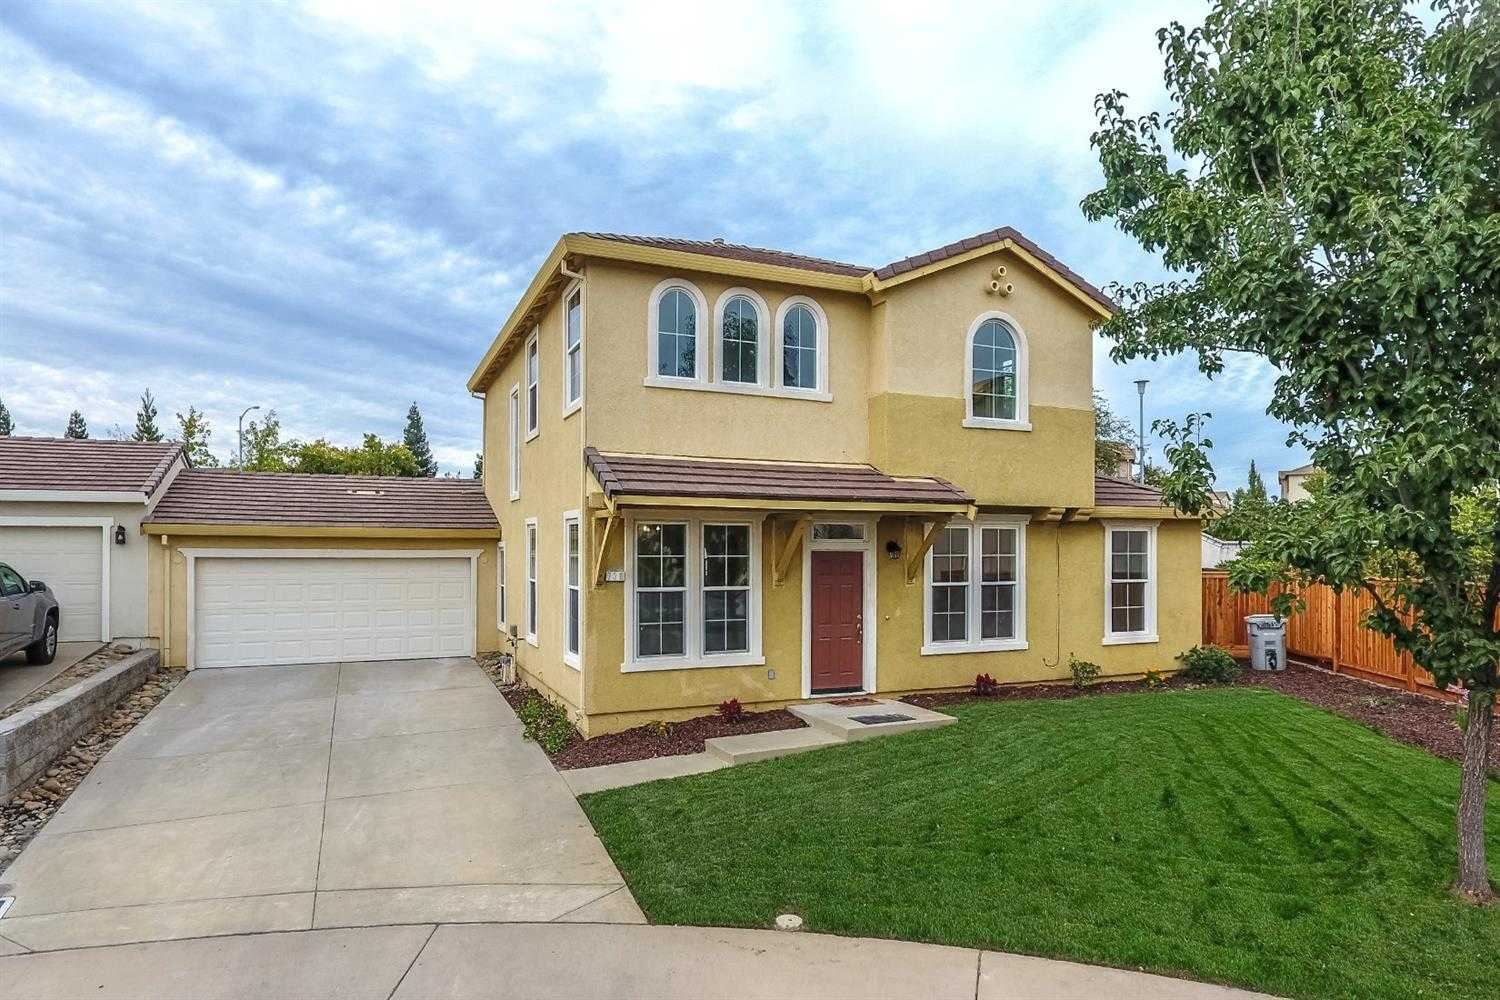 $493,000 - 4Br/3Ba -  for Sale in Folsom